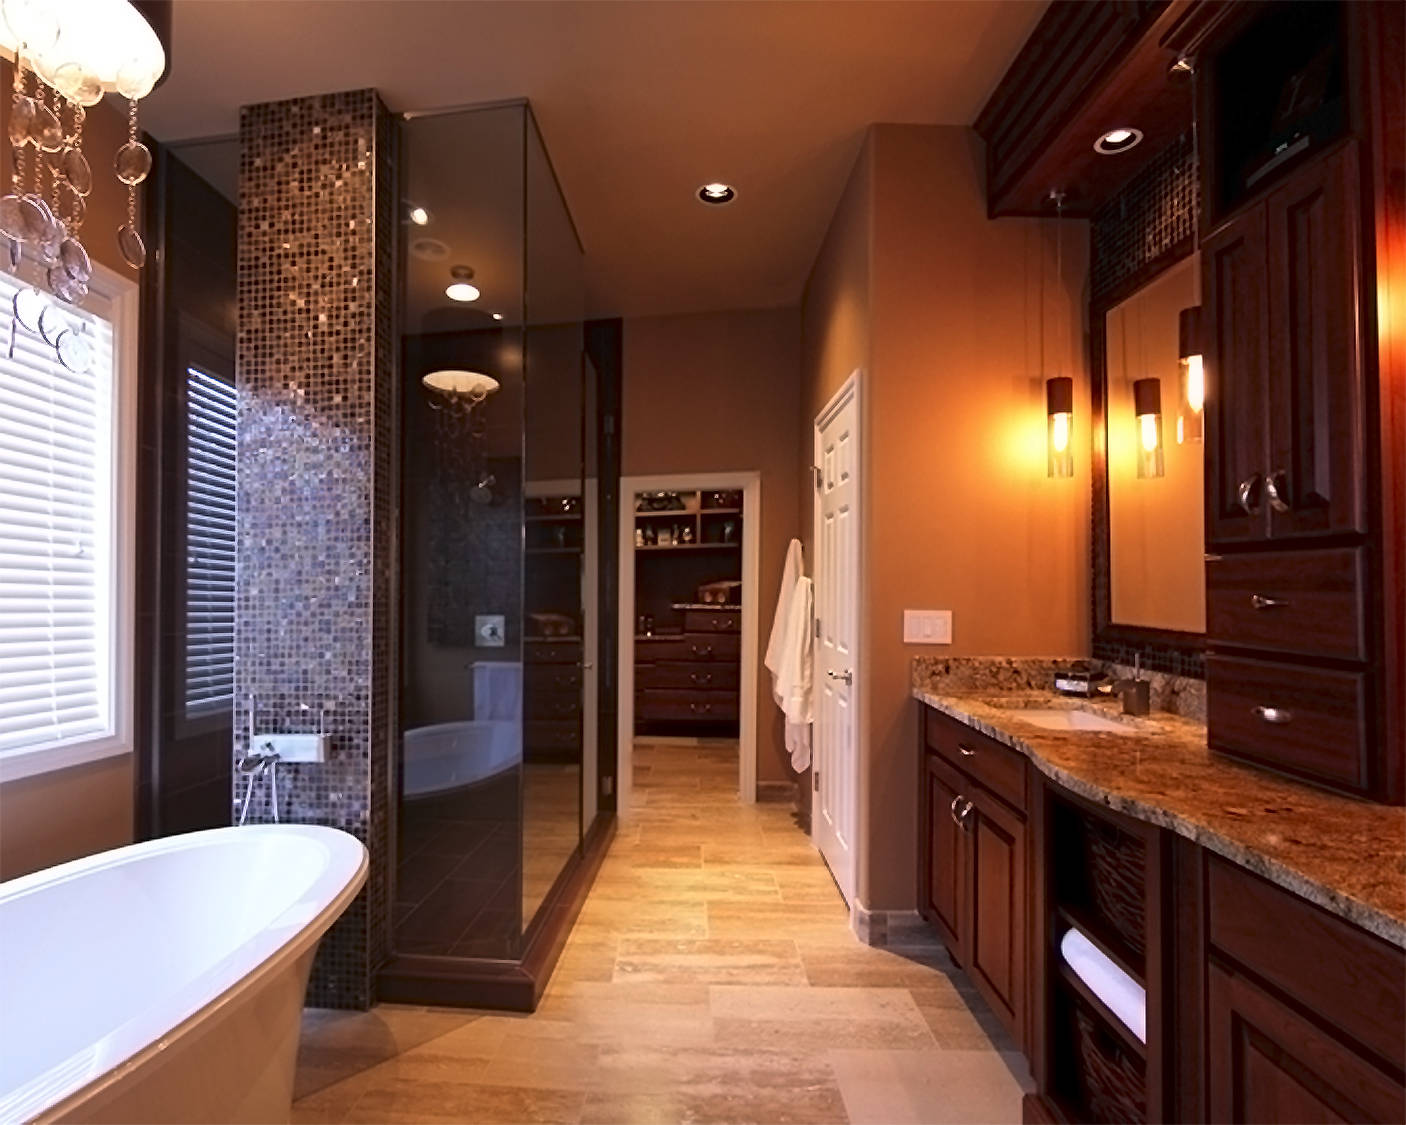 30 Best Bathroom Remodel Ideas You Must Have a Look ...